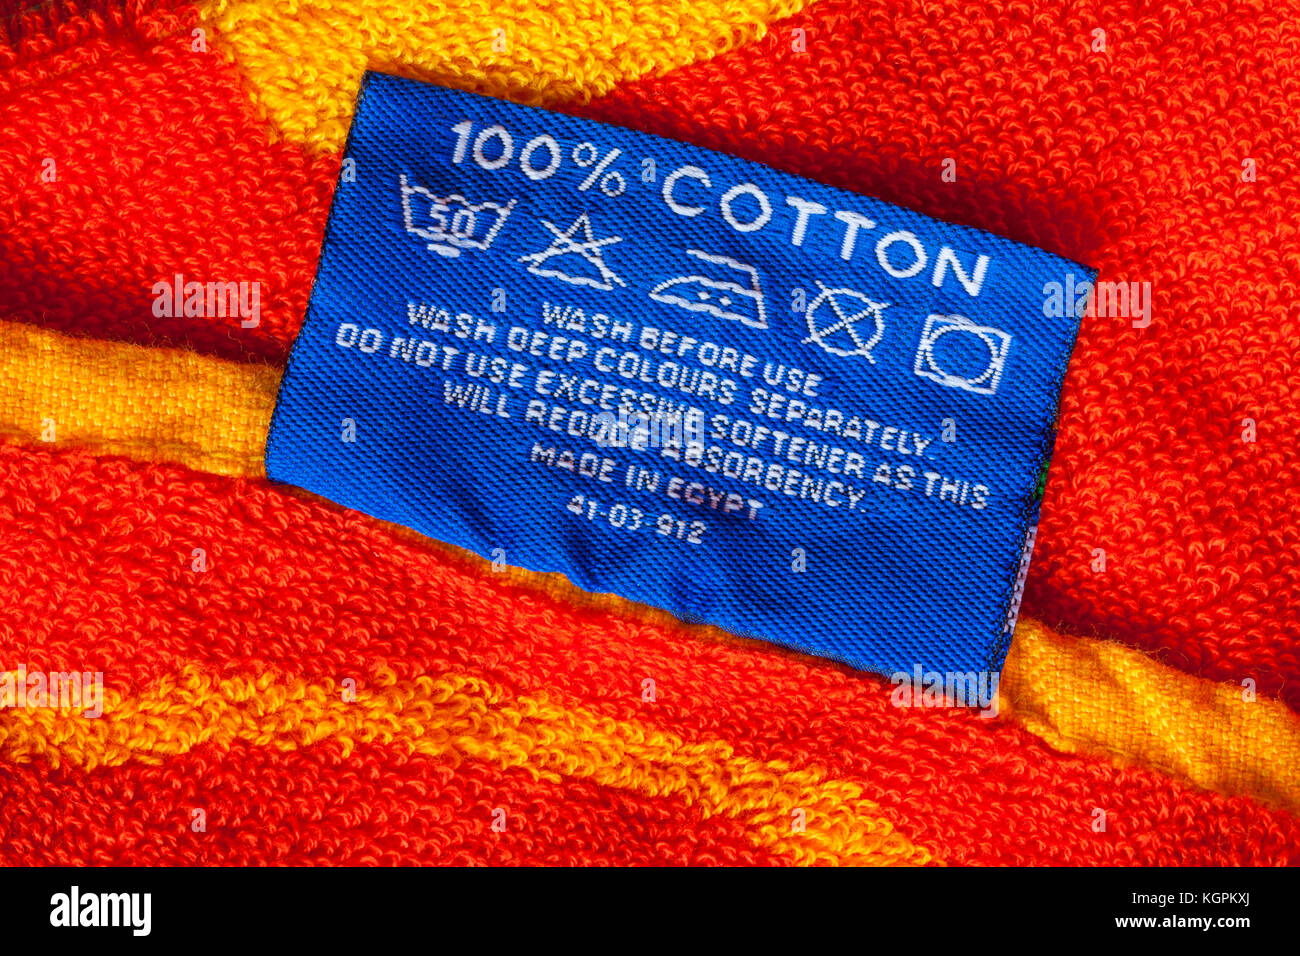 100 Cotton With Care Wash Symbols Label On Beach Towel Made In